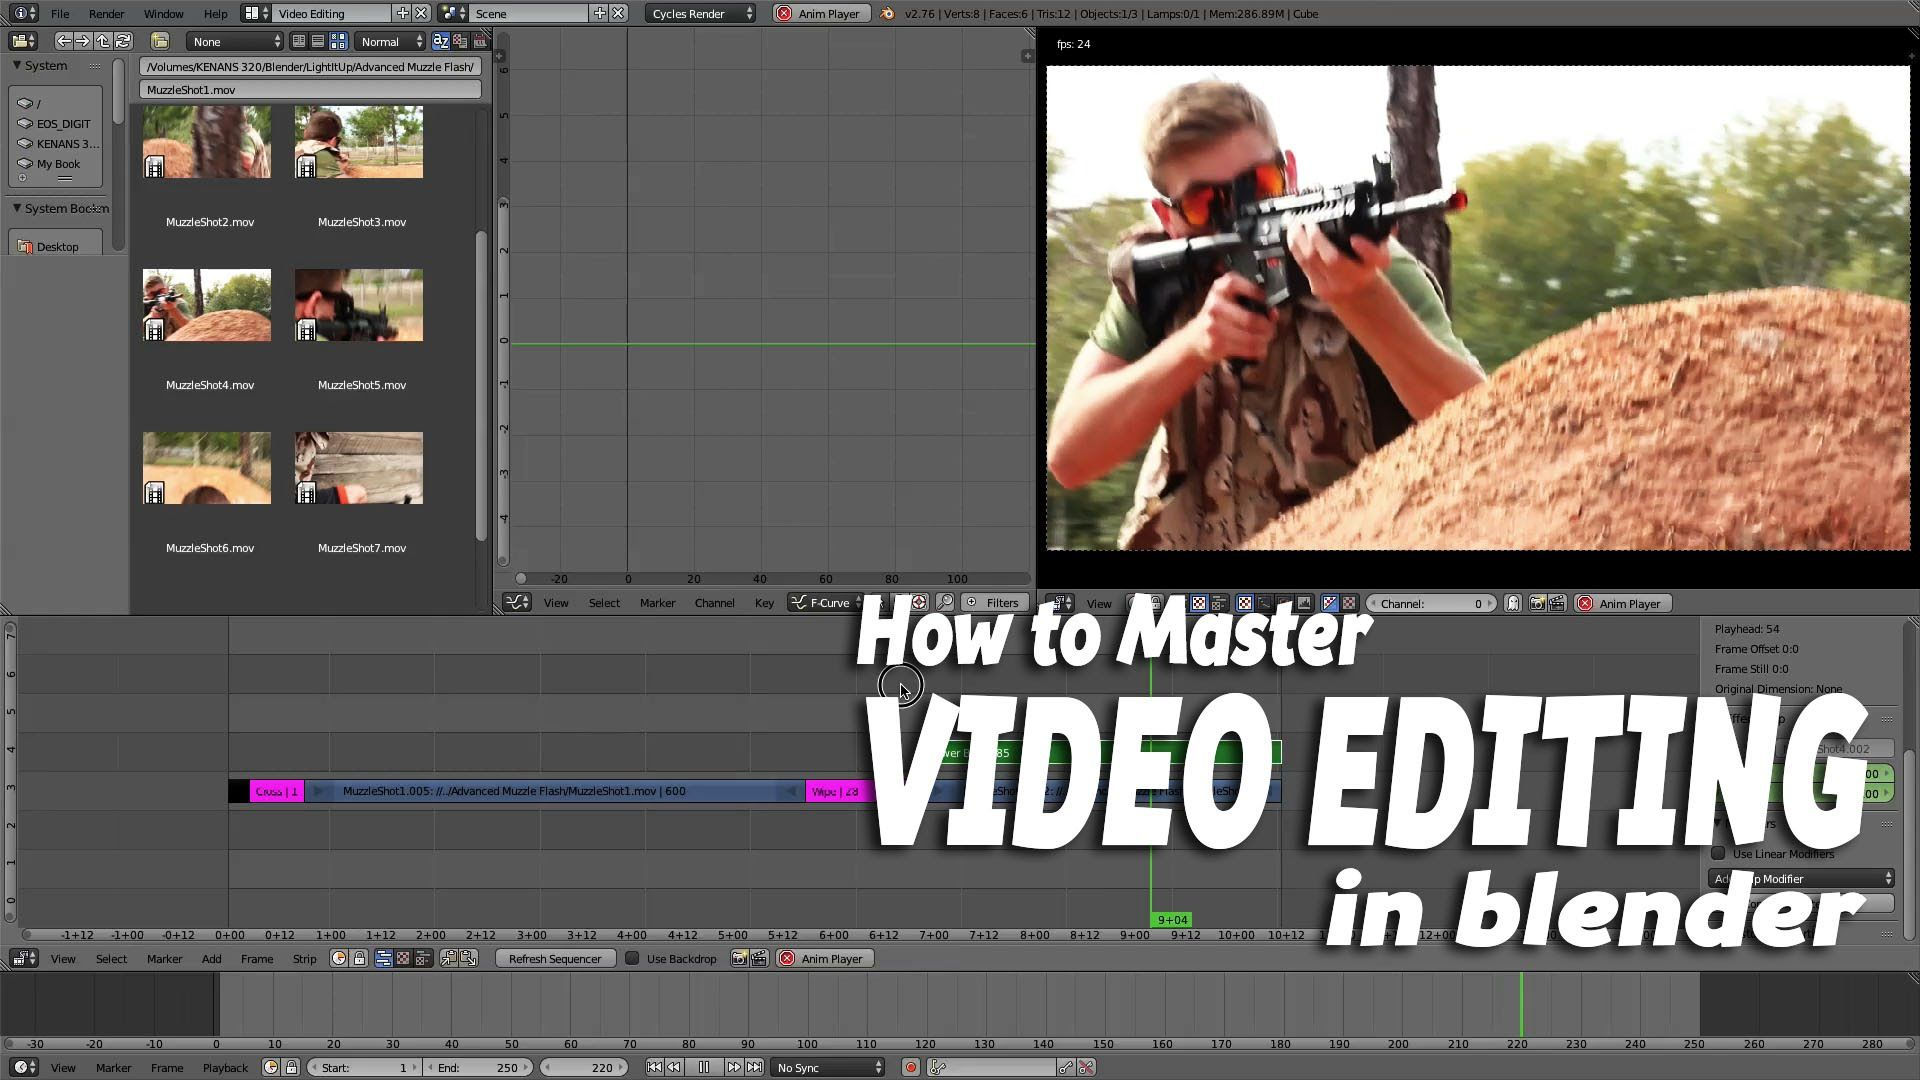 How to Master Video Editing in Blender. Video editing